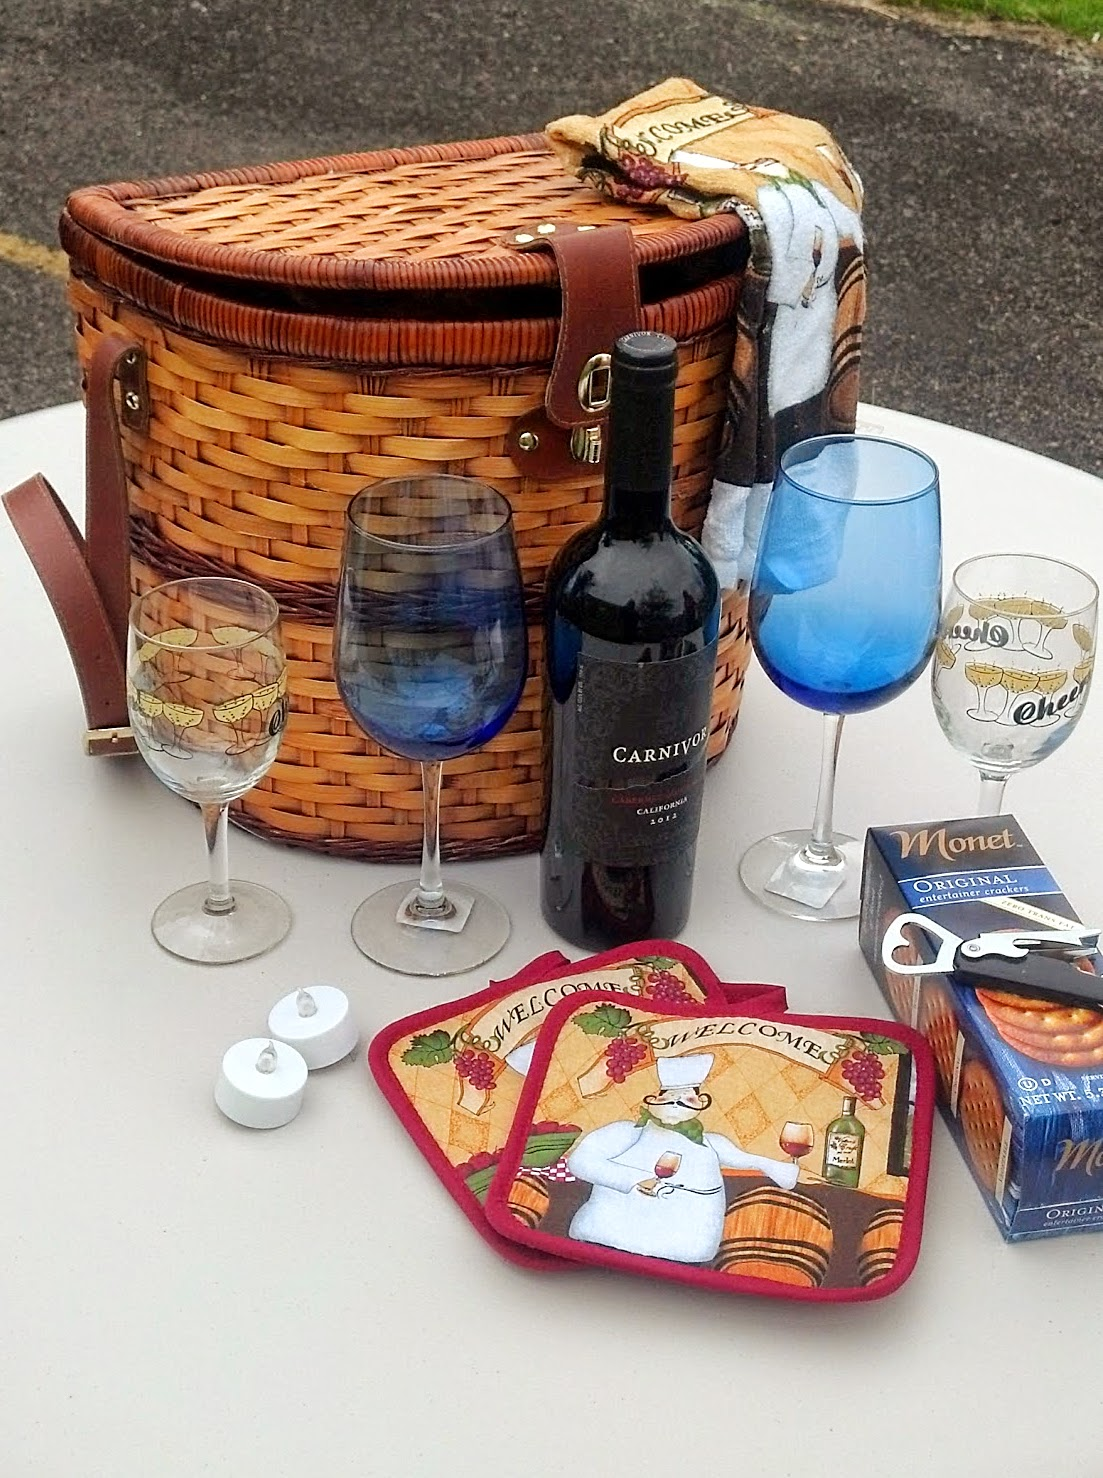 Spokane County 911 starts off the 2014 Gift Basket Silent Auction with four amazing offerings!